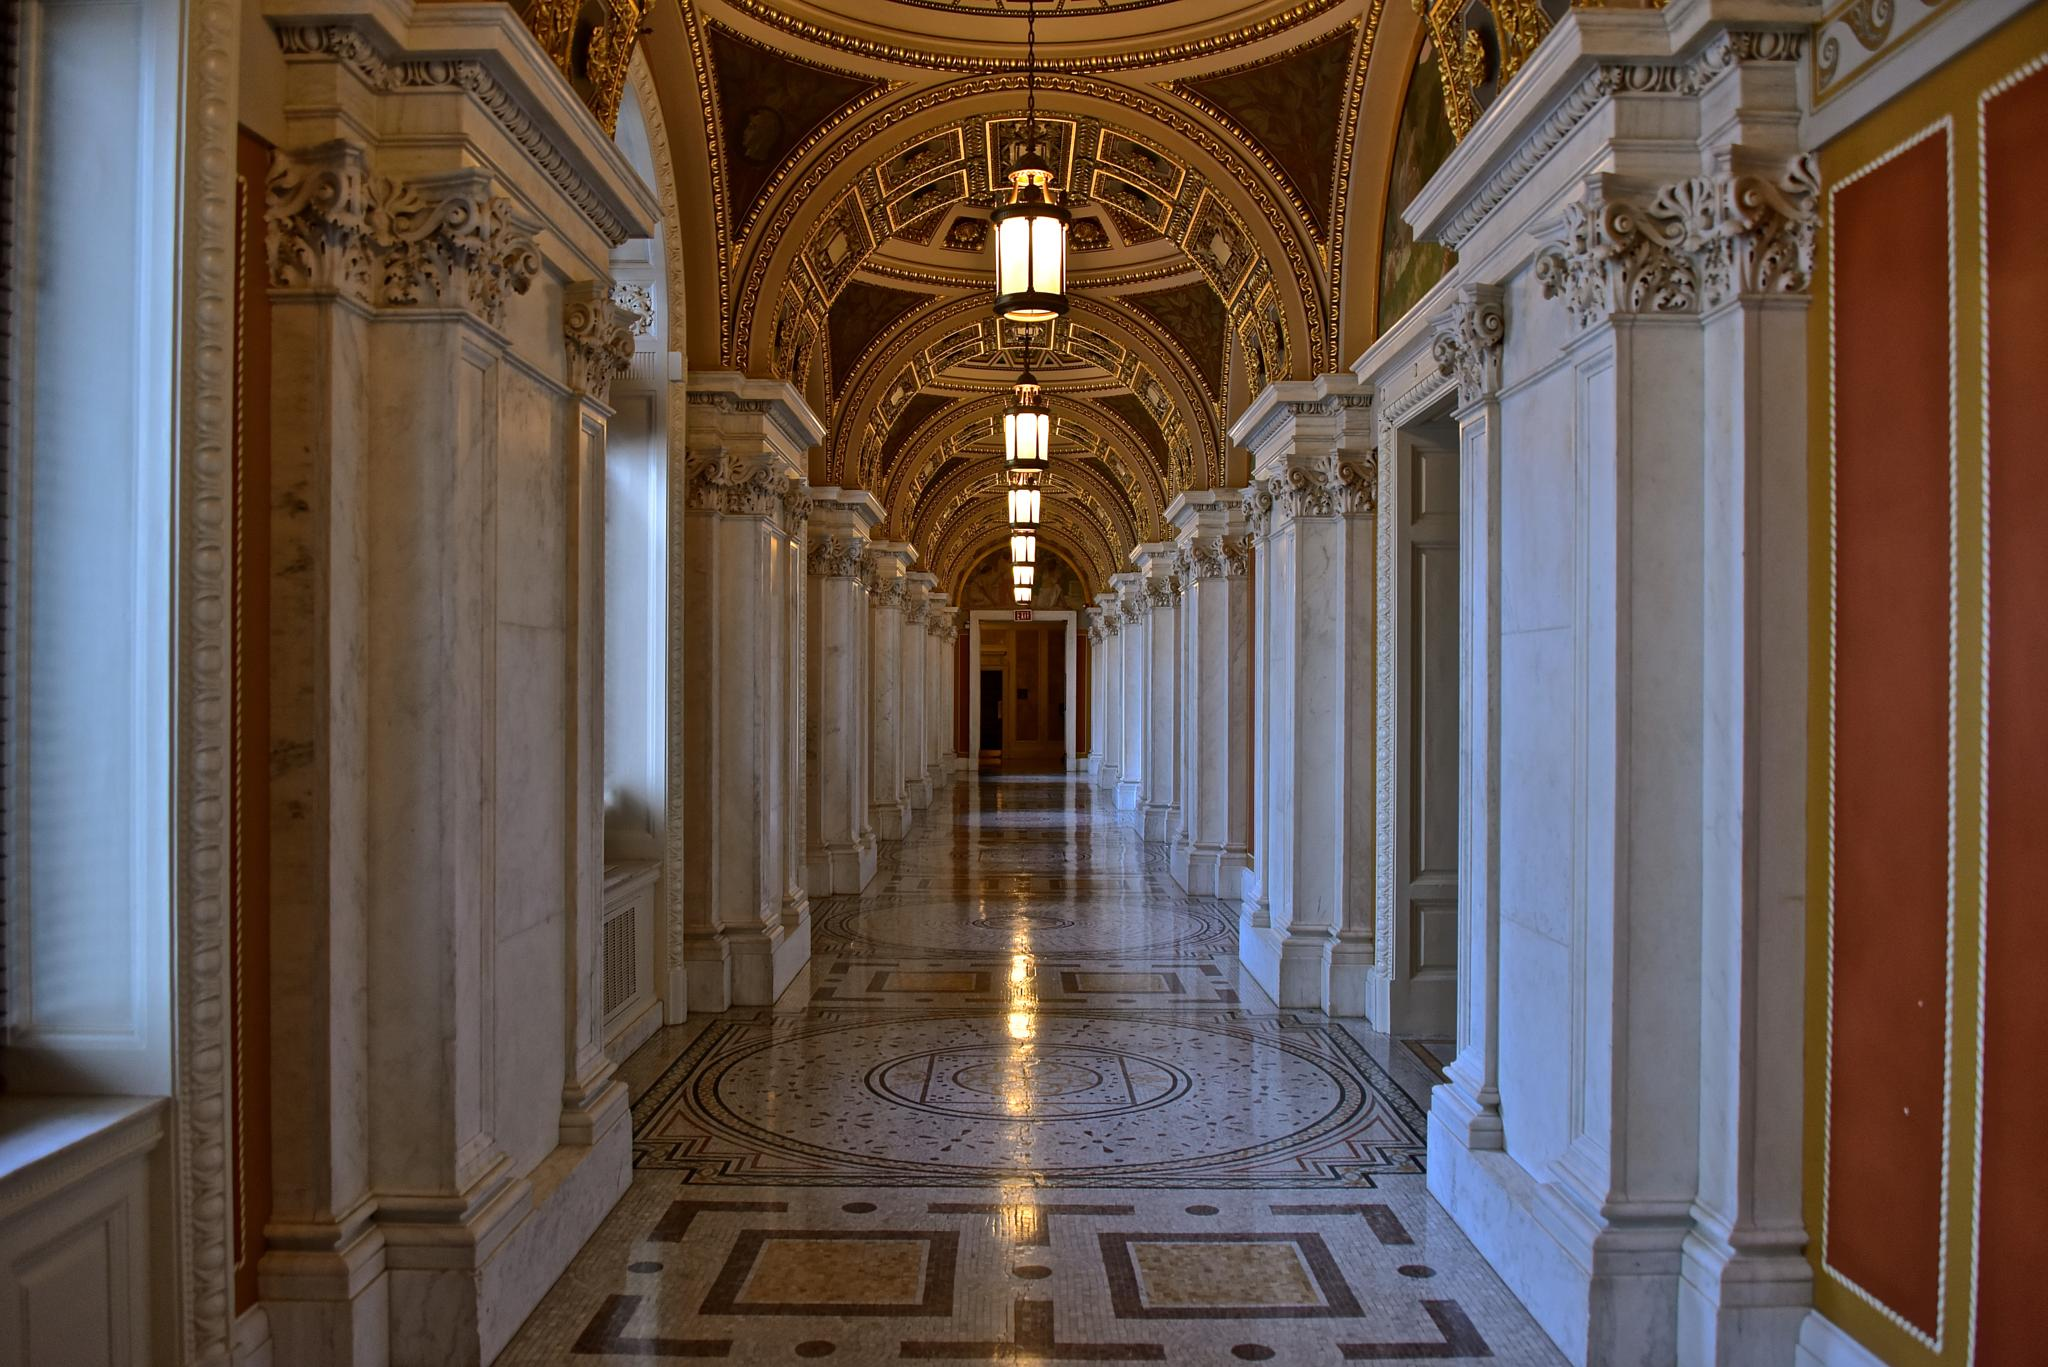 Library of Congress Hallway by Steve Aicinena